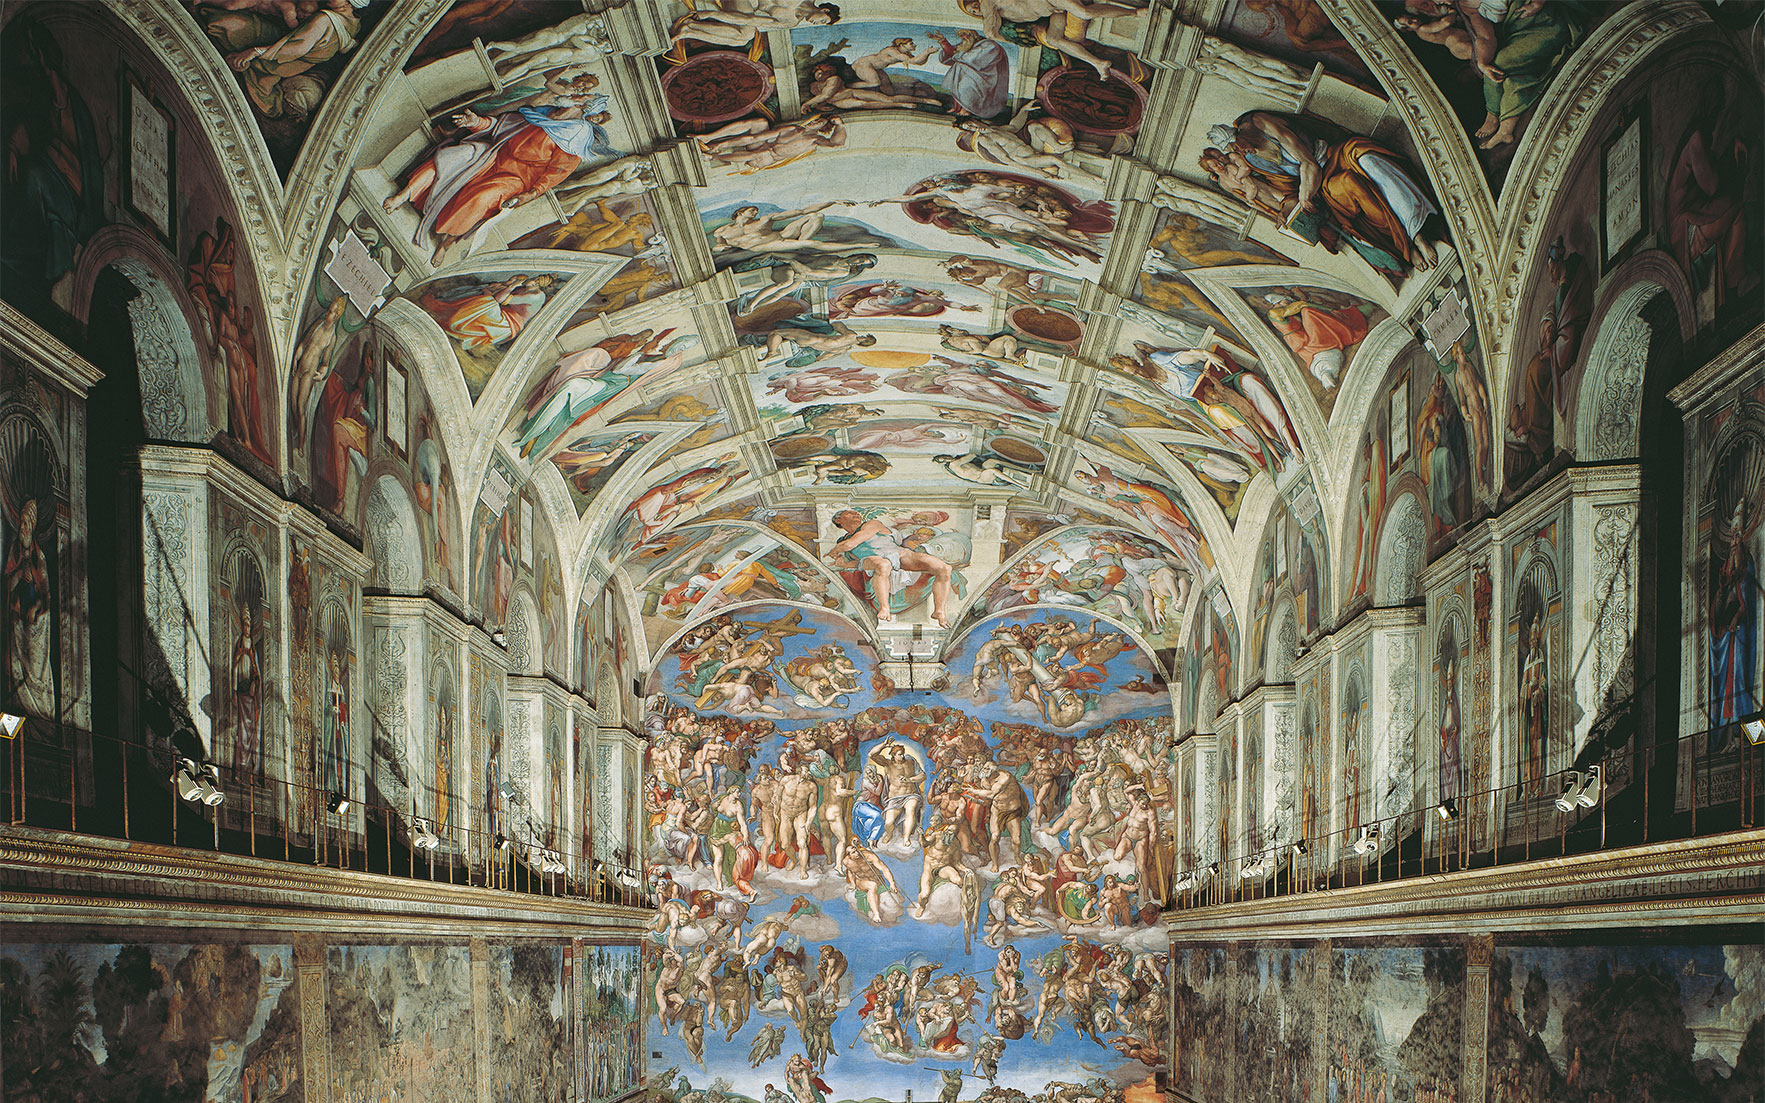 Michelangelo's frescoes in the Sistine Chapel. Photograph © Musei e Gallerie Pontificie, Musei Vaticani, Vatican City  Mondadori Portfolio  Bridgeman Images